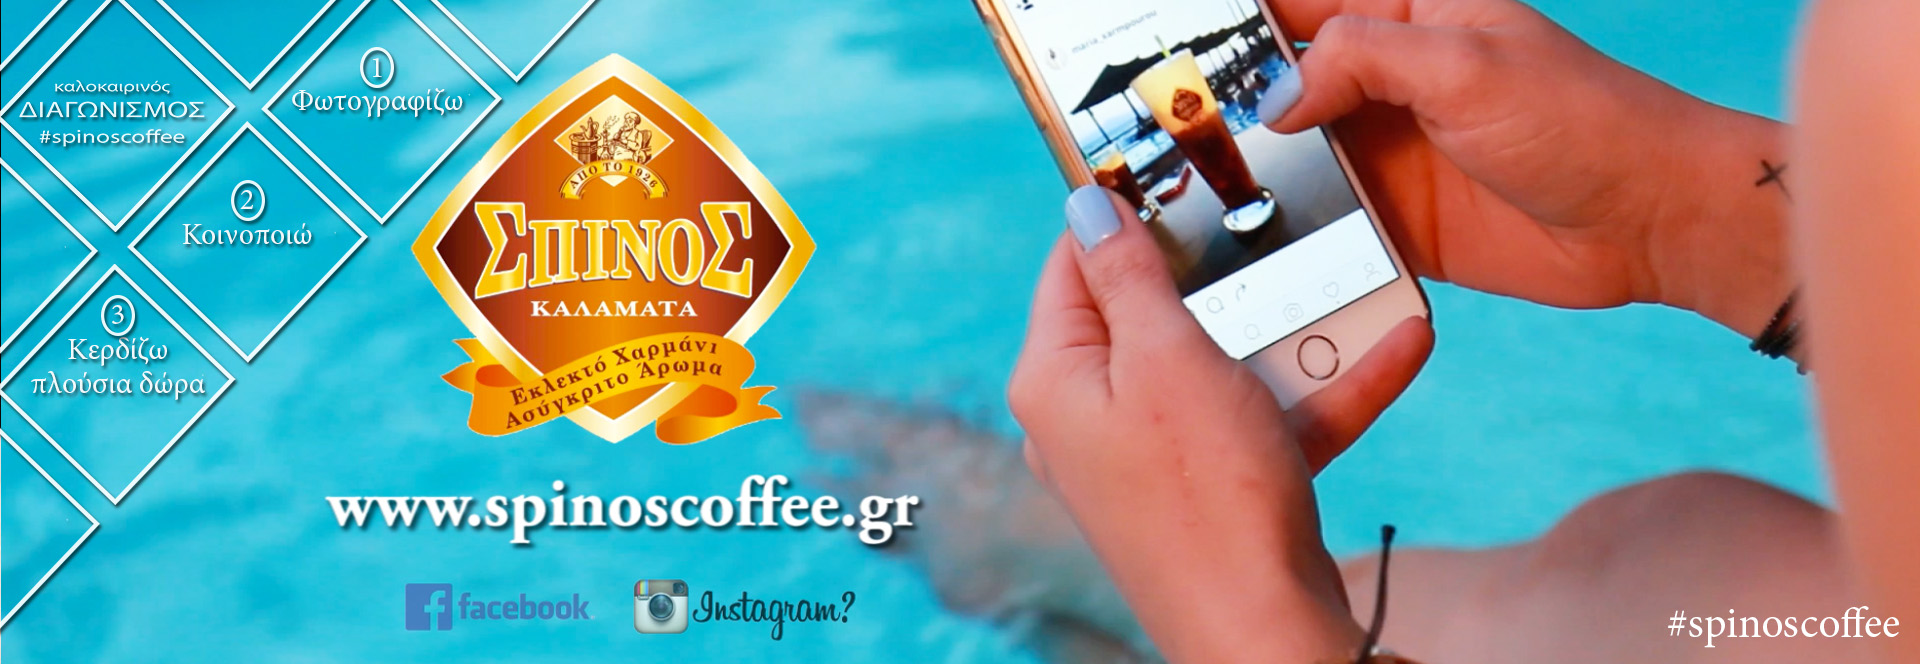 spinos-coffee-contest-site